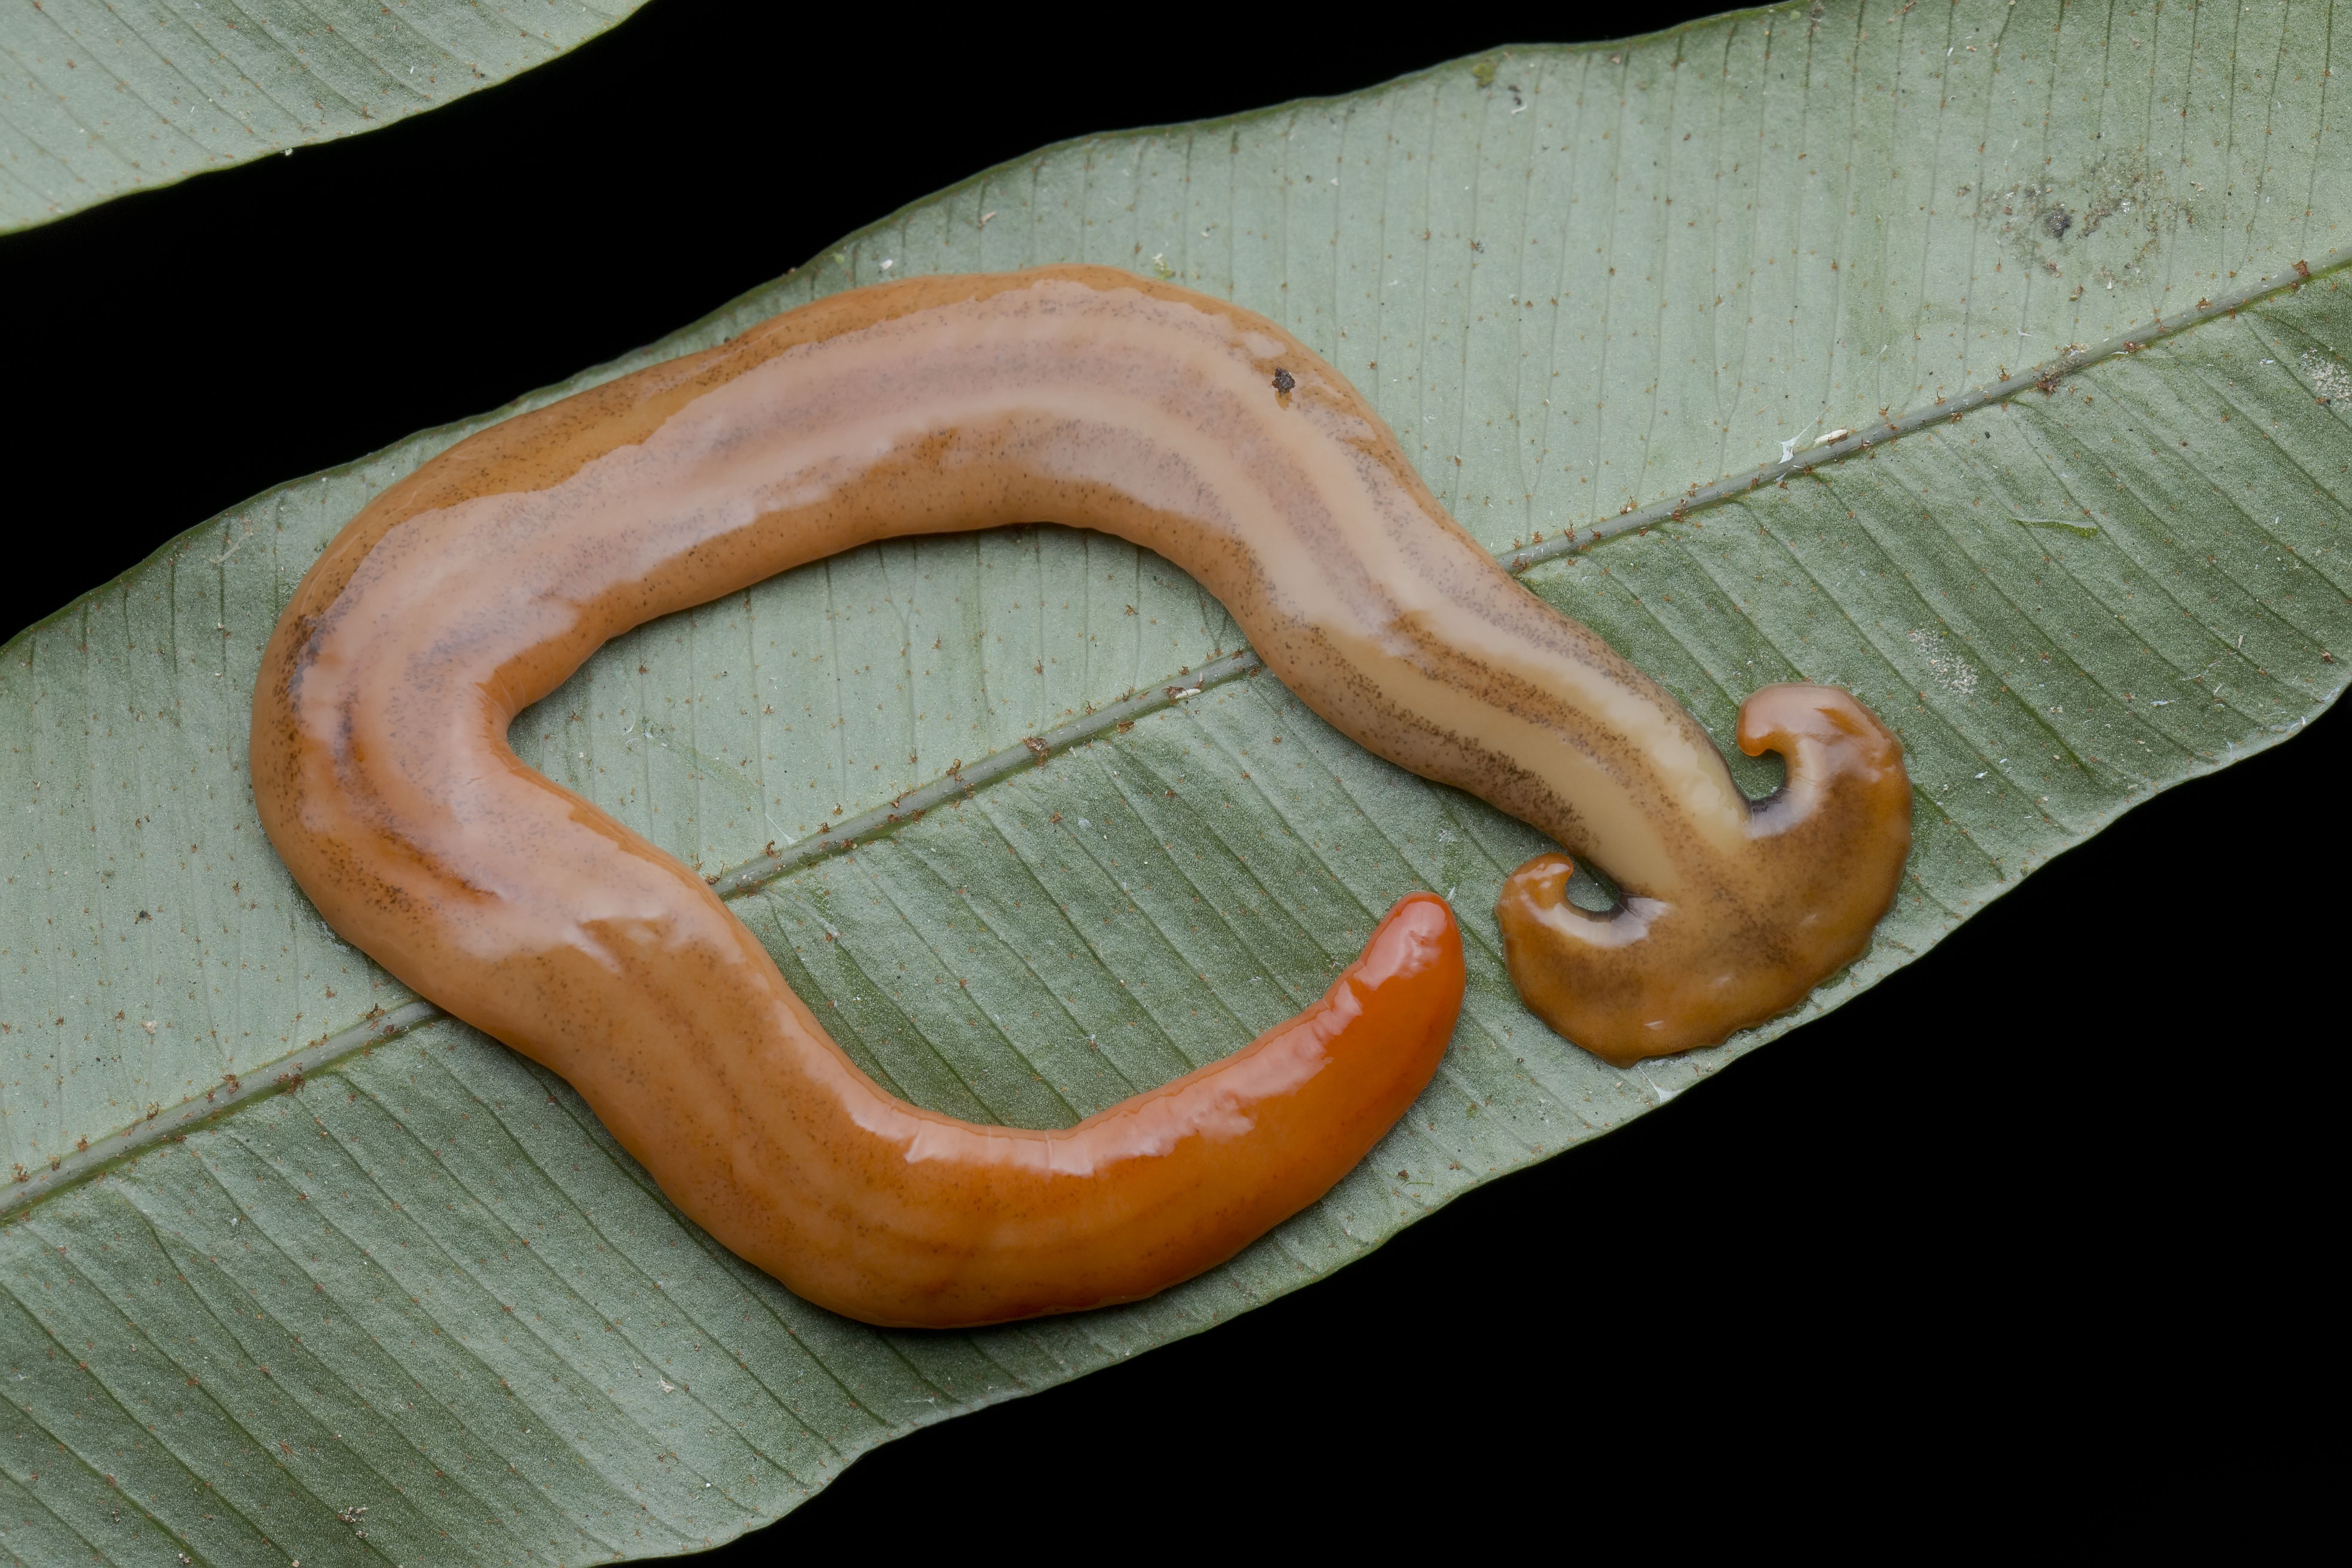 The hammerhead worm has a long, flattened body and a broad head.